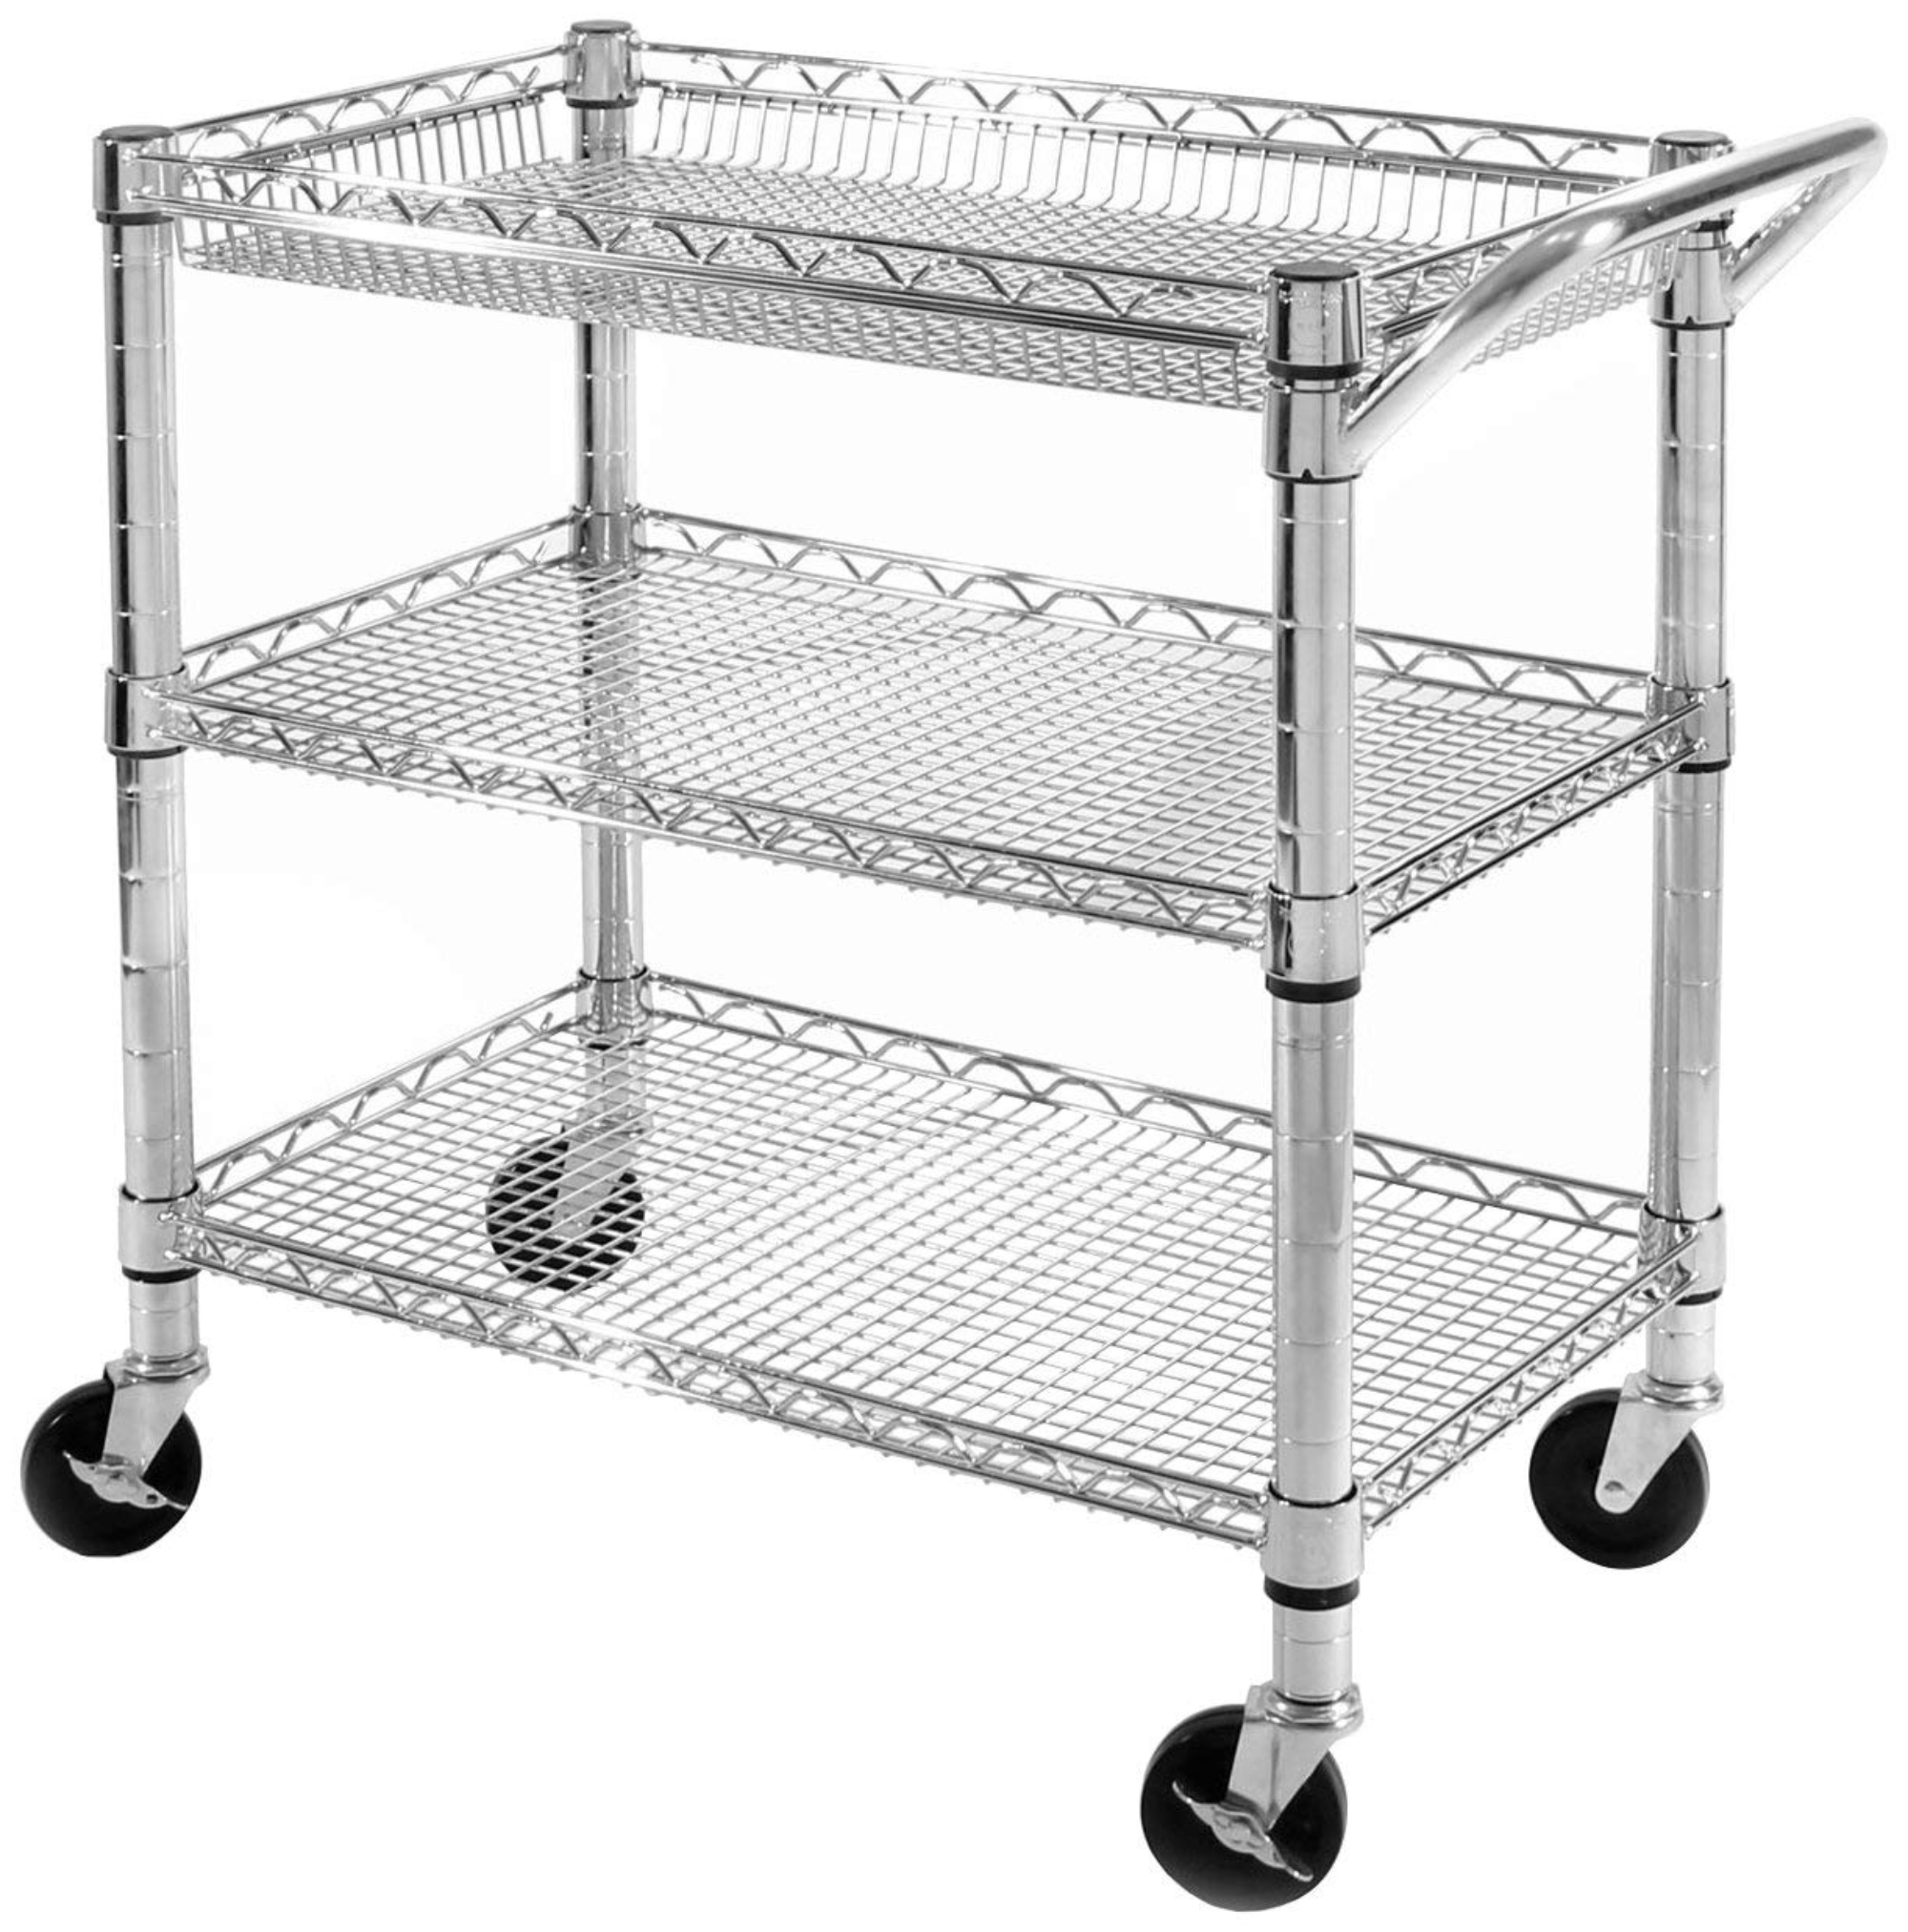 3-Tier Heavy-Duty Commercial-Grade Utility Cart by Seville Classics